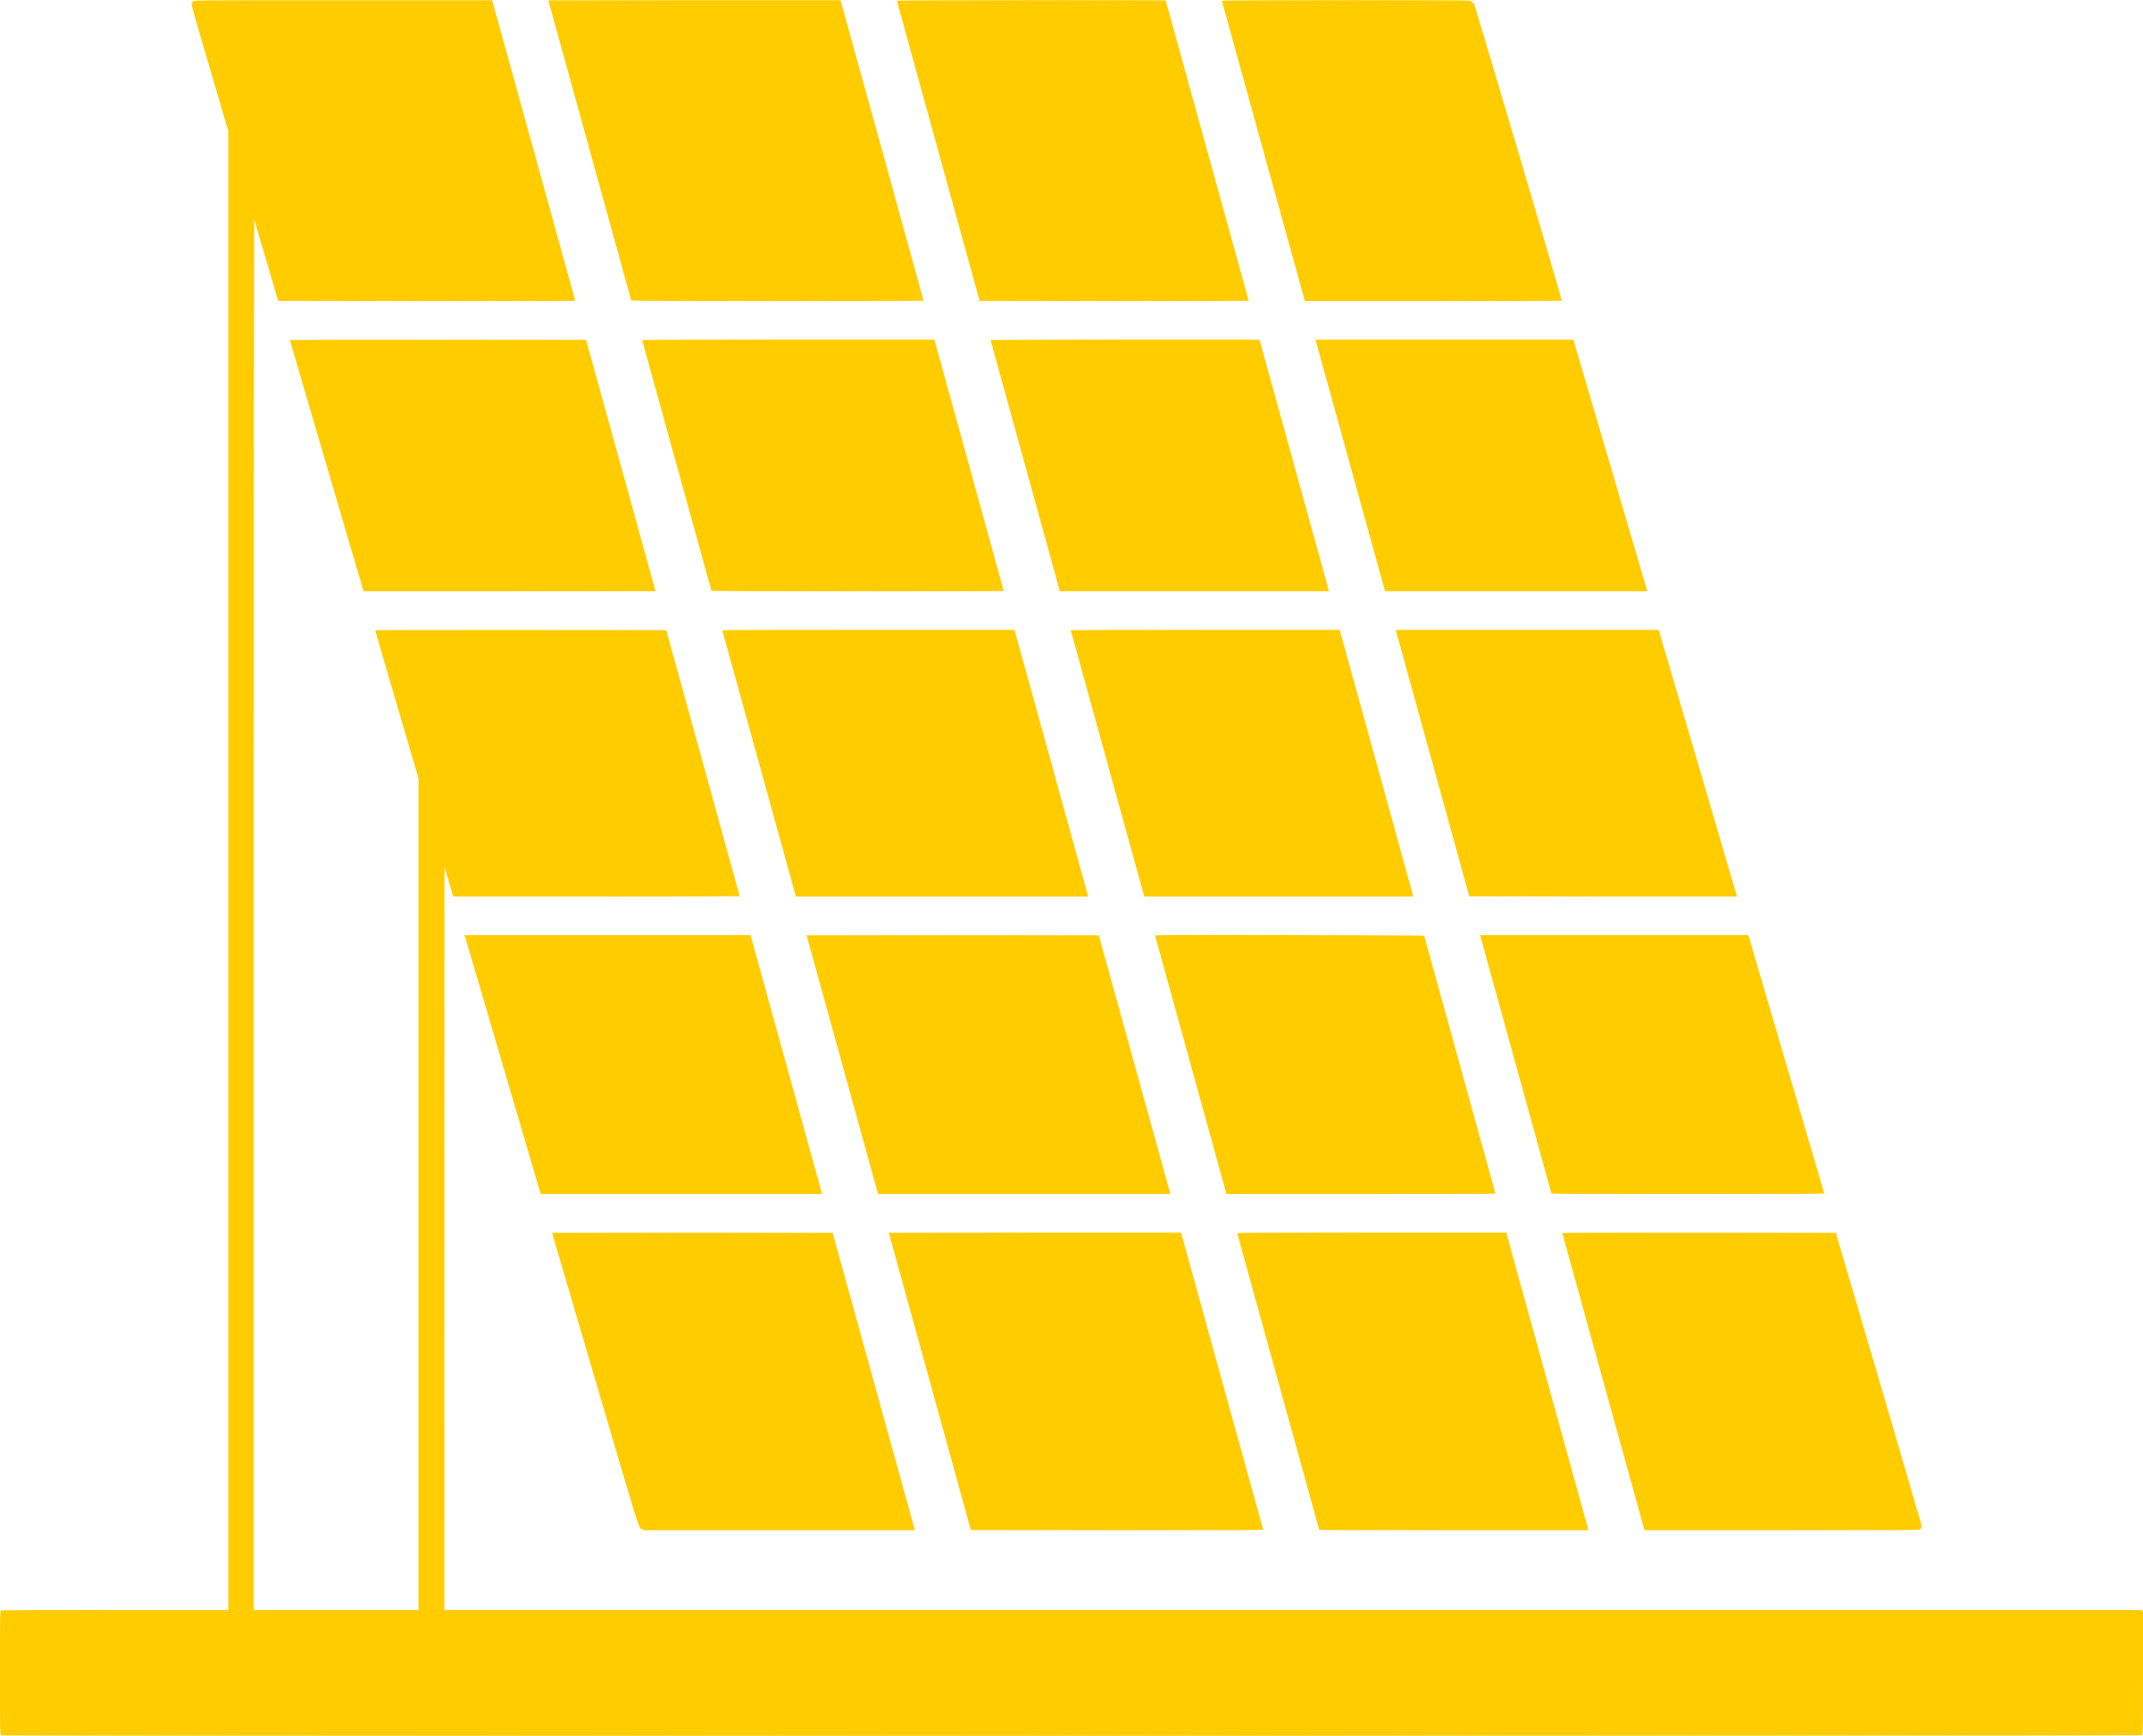 Solar panel vectorized by Firkin